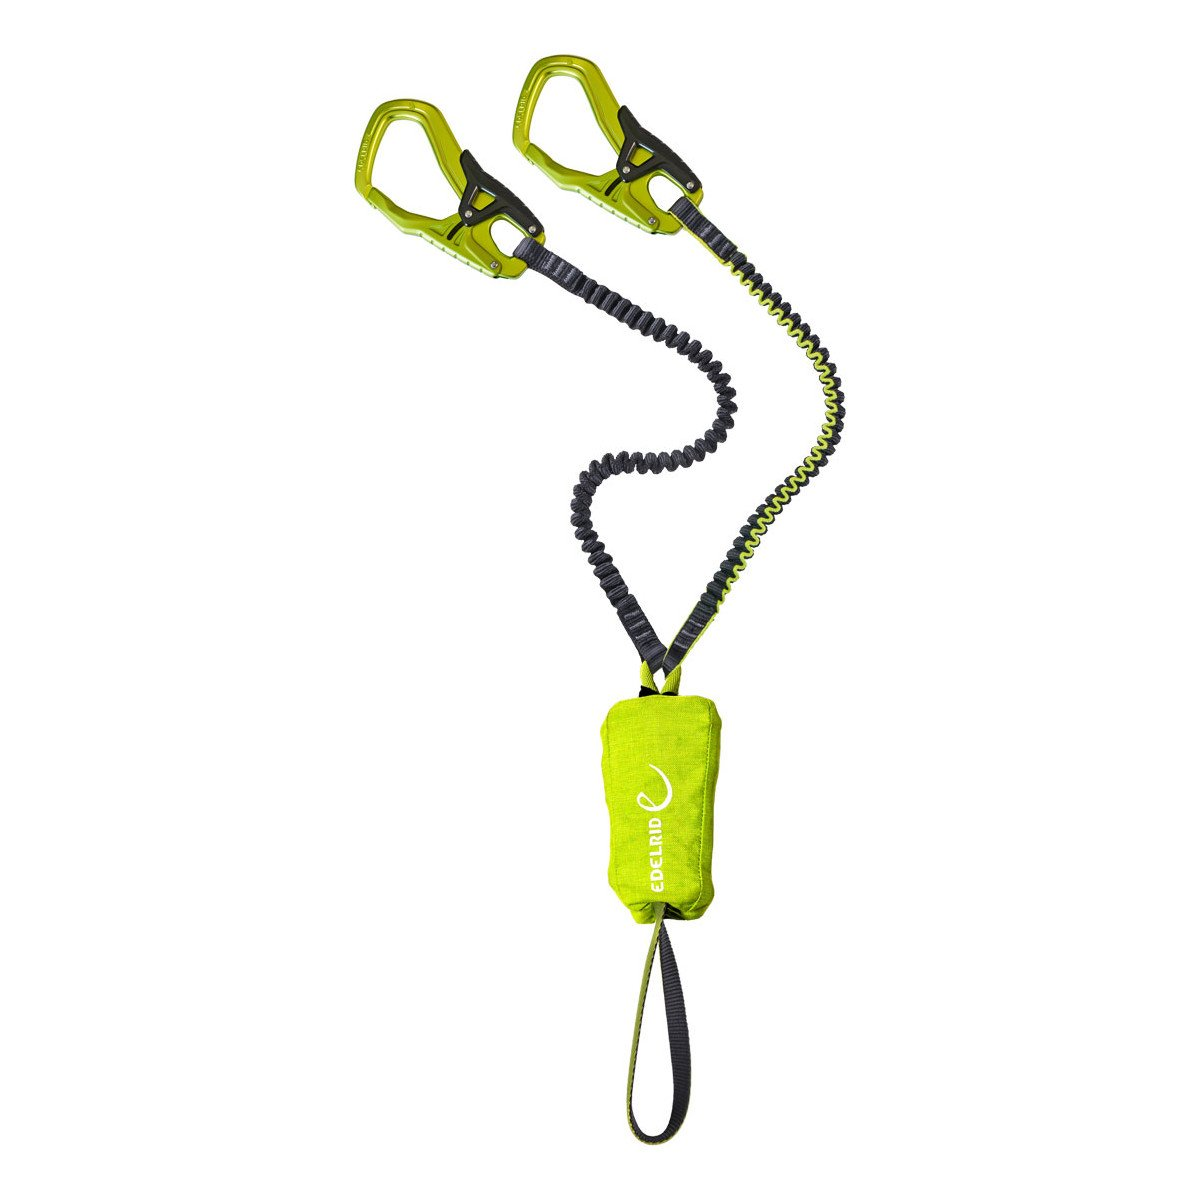 Edelrid Cable Kit 5.0 for via ferrata, in green with two green carabiners